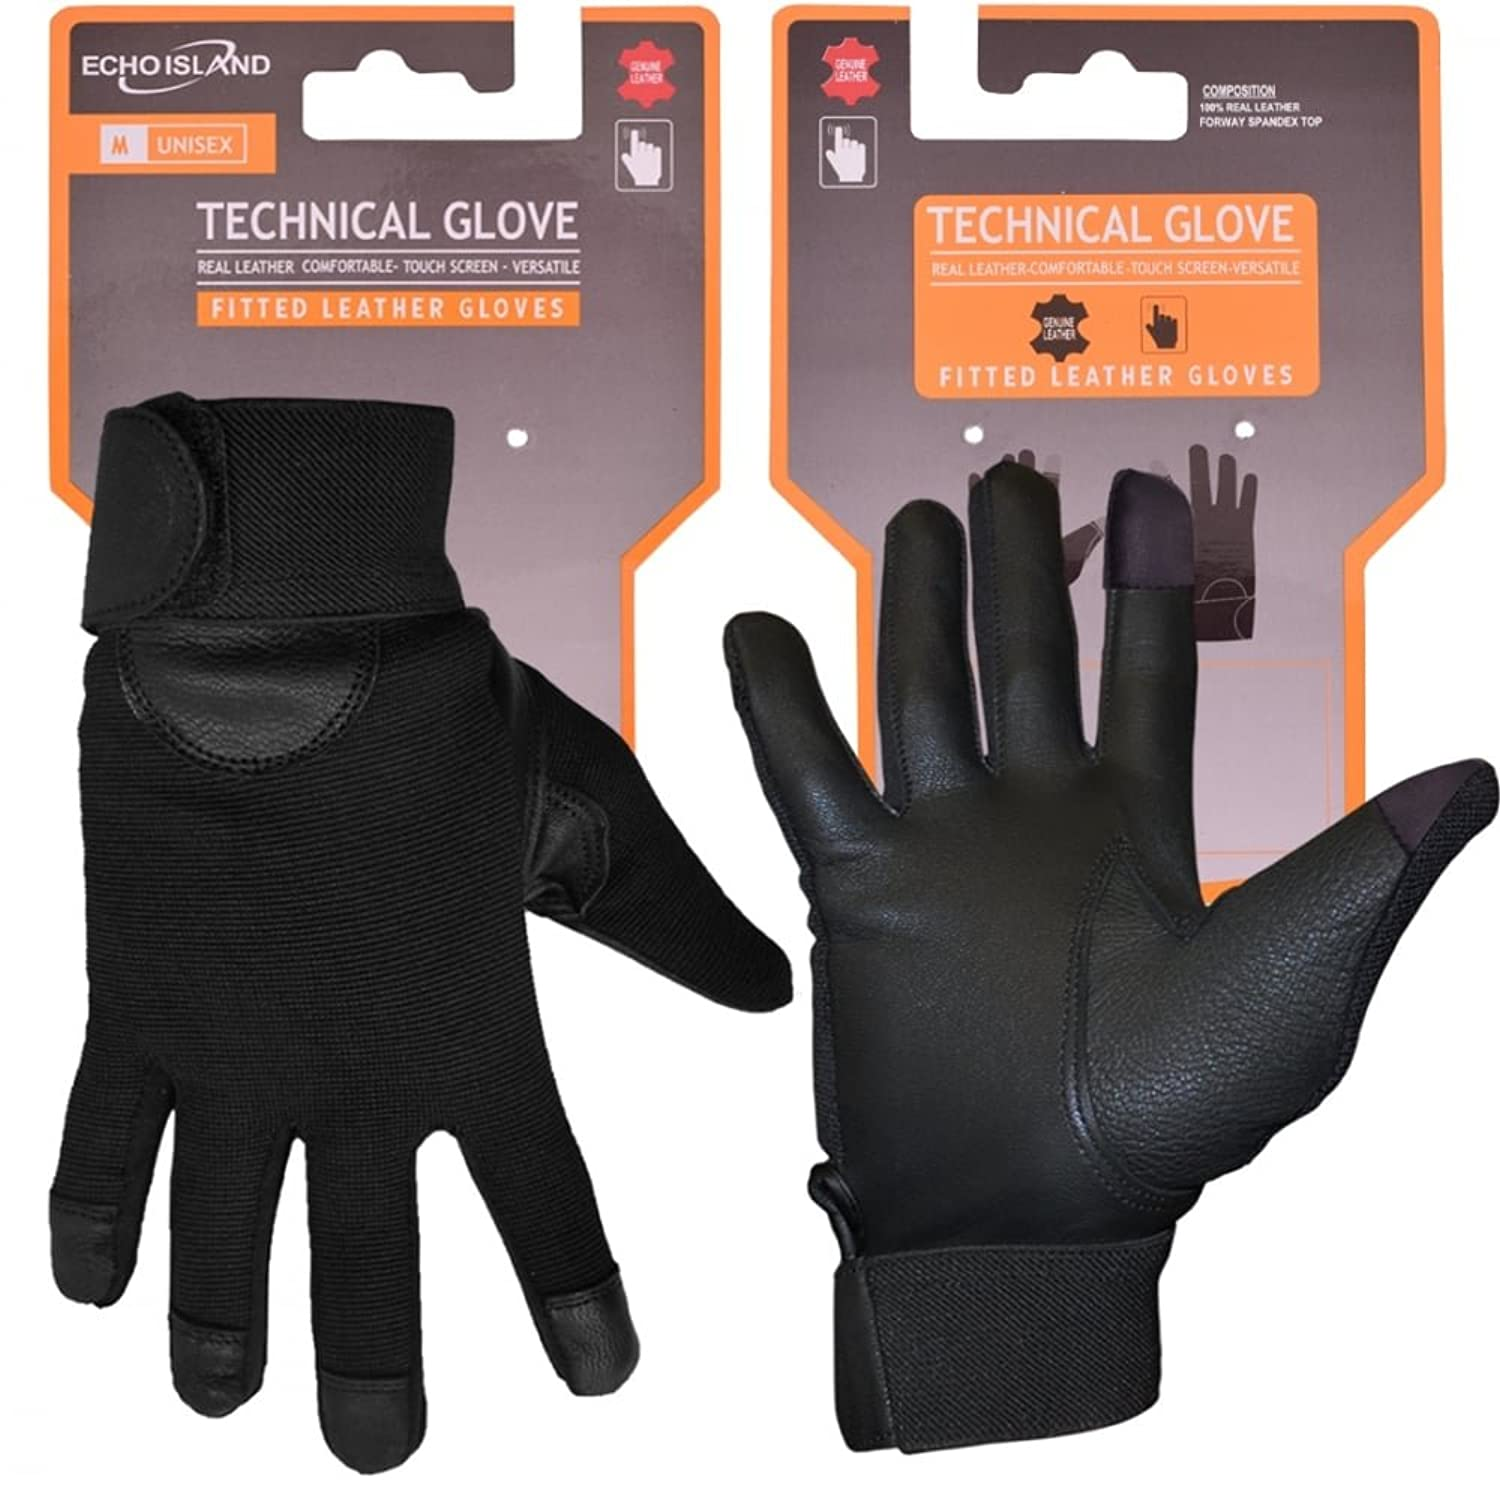 Driving gloves argos - Mens And Womens Fitted Real Leather Gloves With Spandex Velcro Fastened Driving